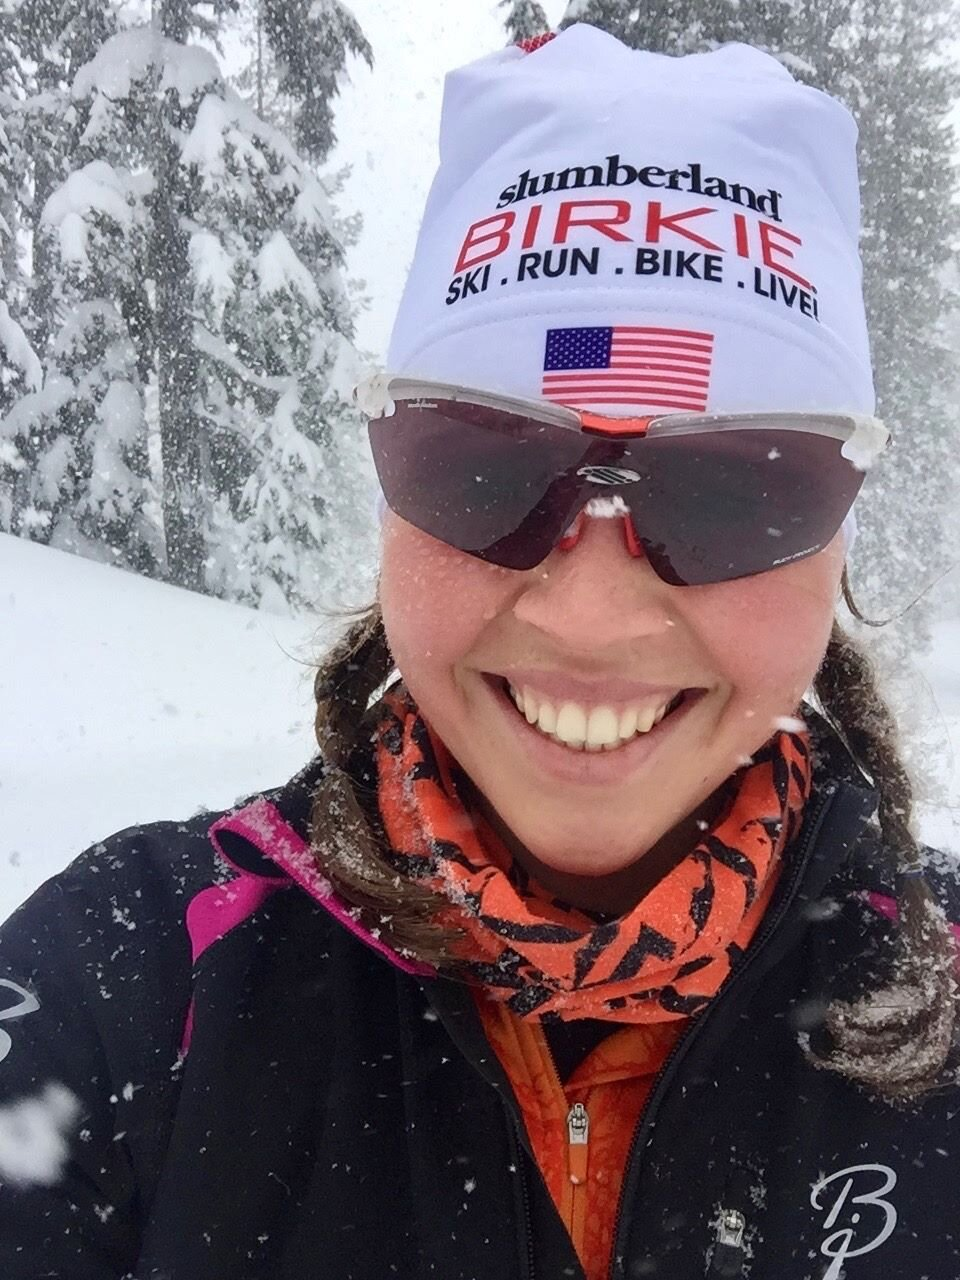 - About coach Liza and coach Molly:US Ski and Snowboard Level 100 Certified, CPR/First Aid, SAFE SPORT, HeadsUp Concussion, St Olaf Graduates, Alumni St Olaf Nordic Ski Team.